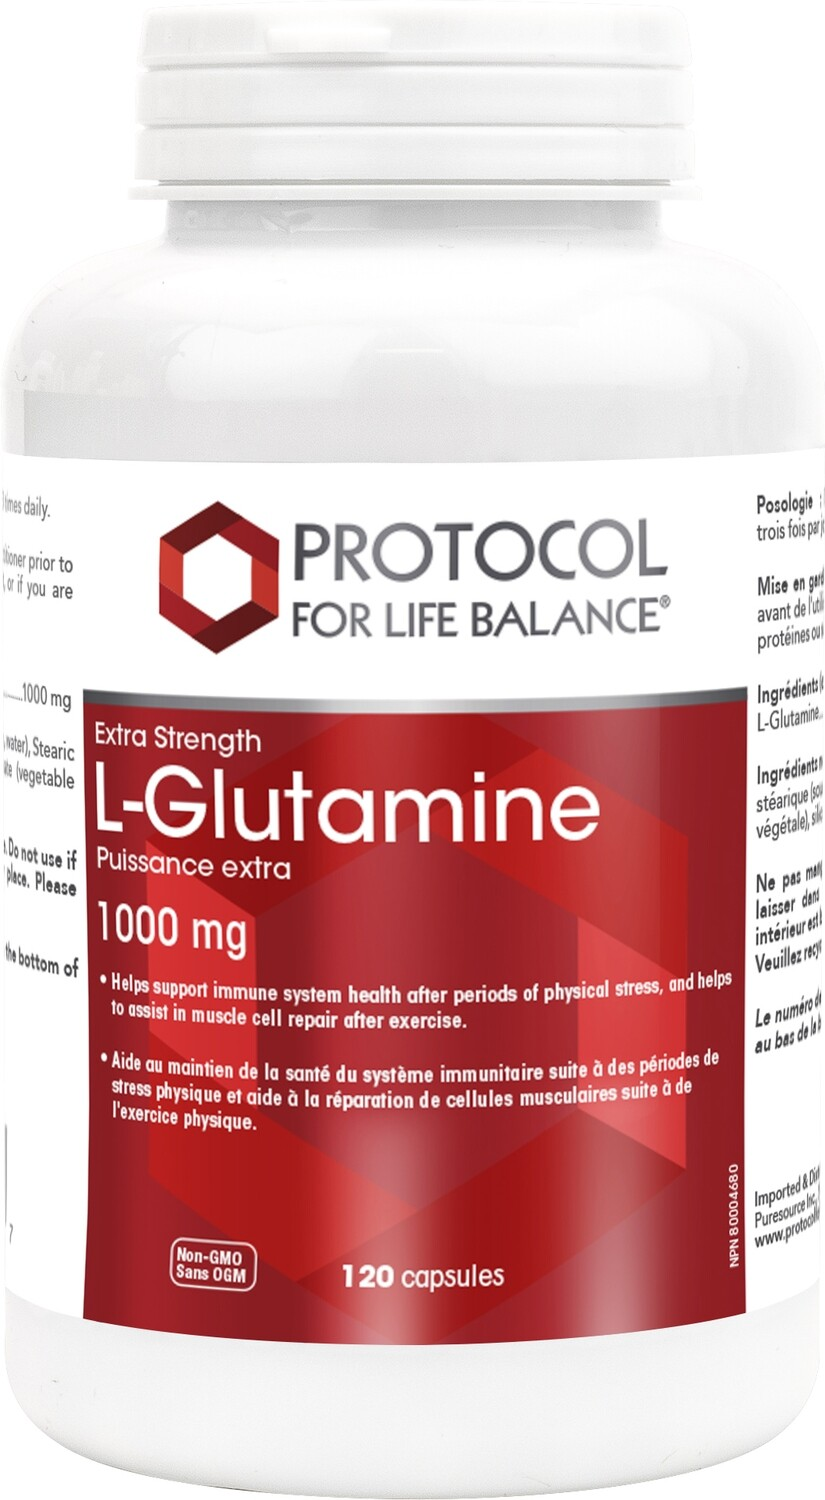 L-Glutamine by Protocol for Life Balance